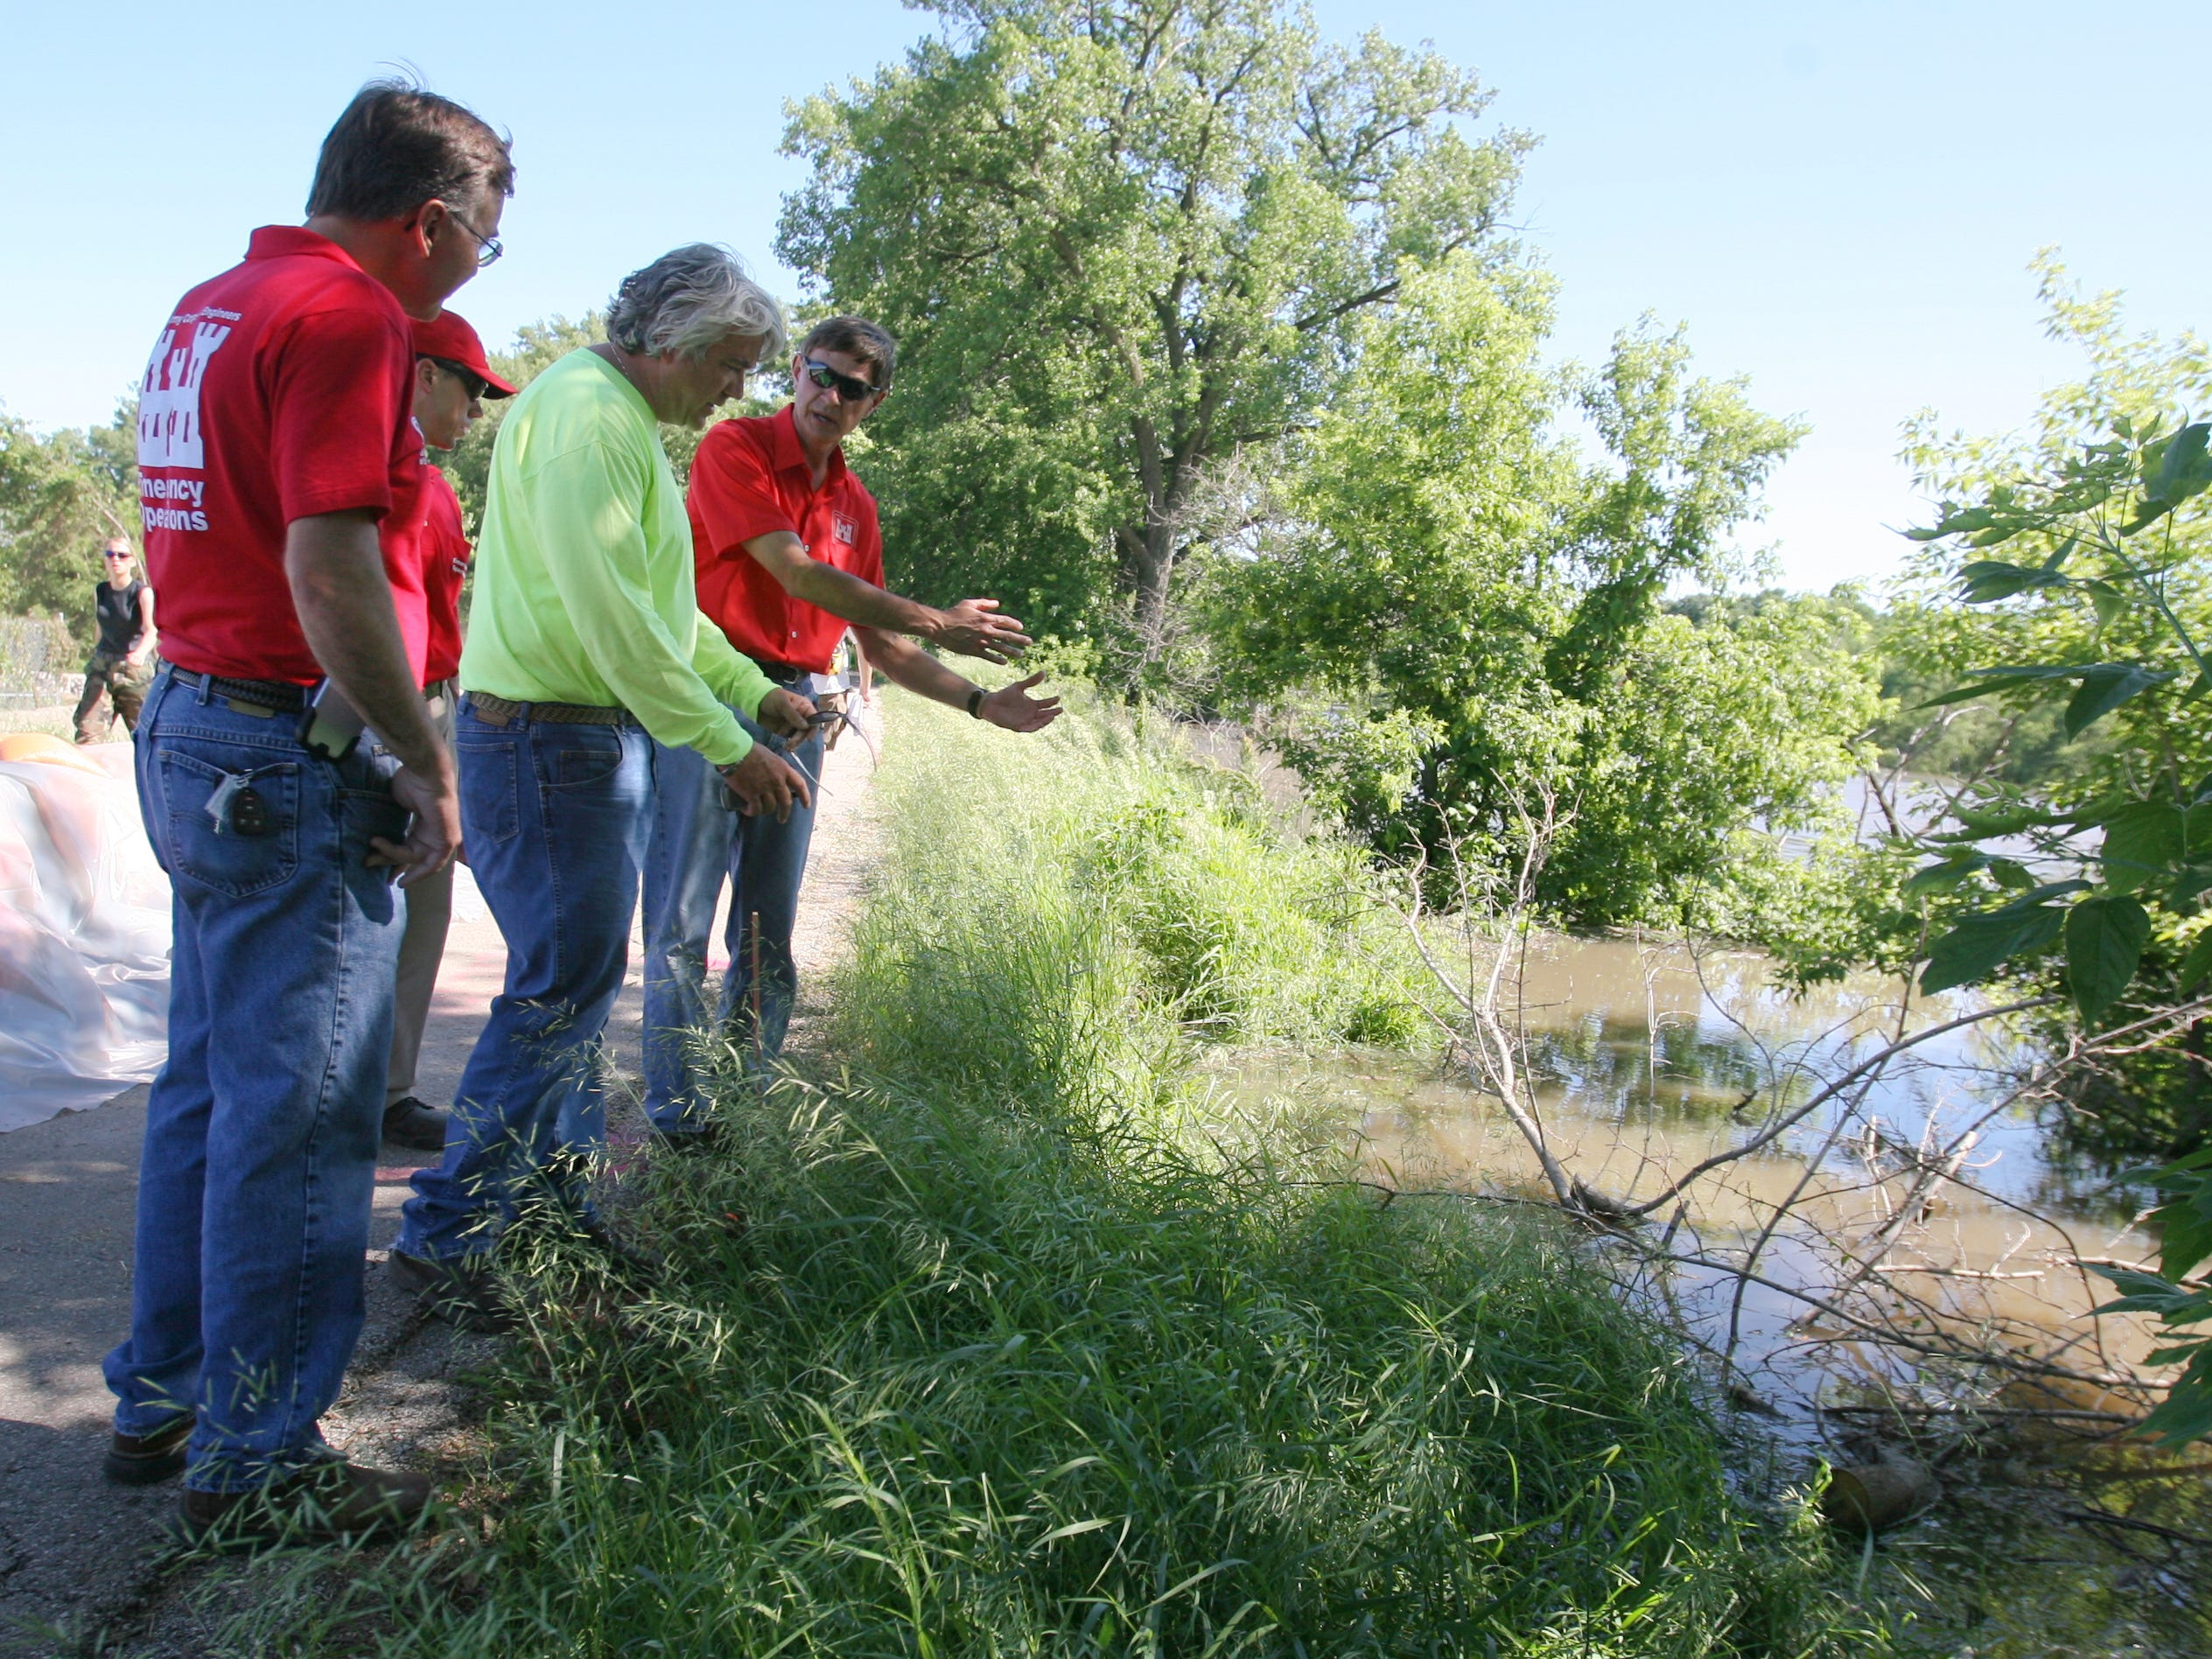 Bill Stowe, in the green, speaks with members of the Army Corp of Engineers about area of soil erosion along the Des Moines River behind North High School during the flood of 2008.